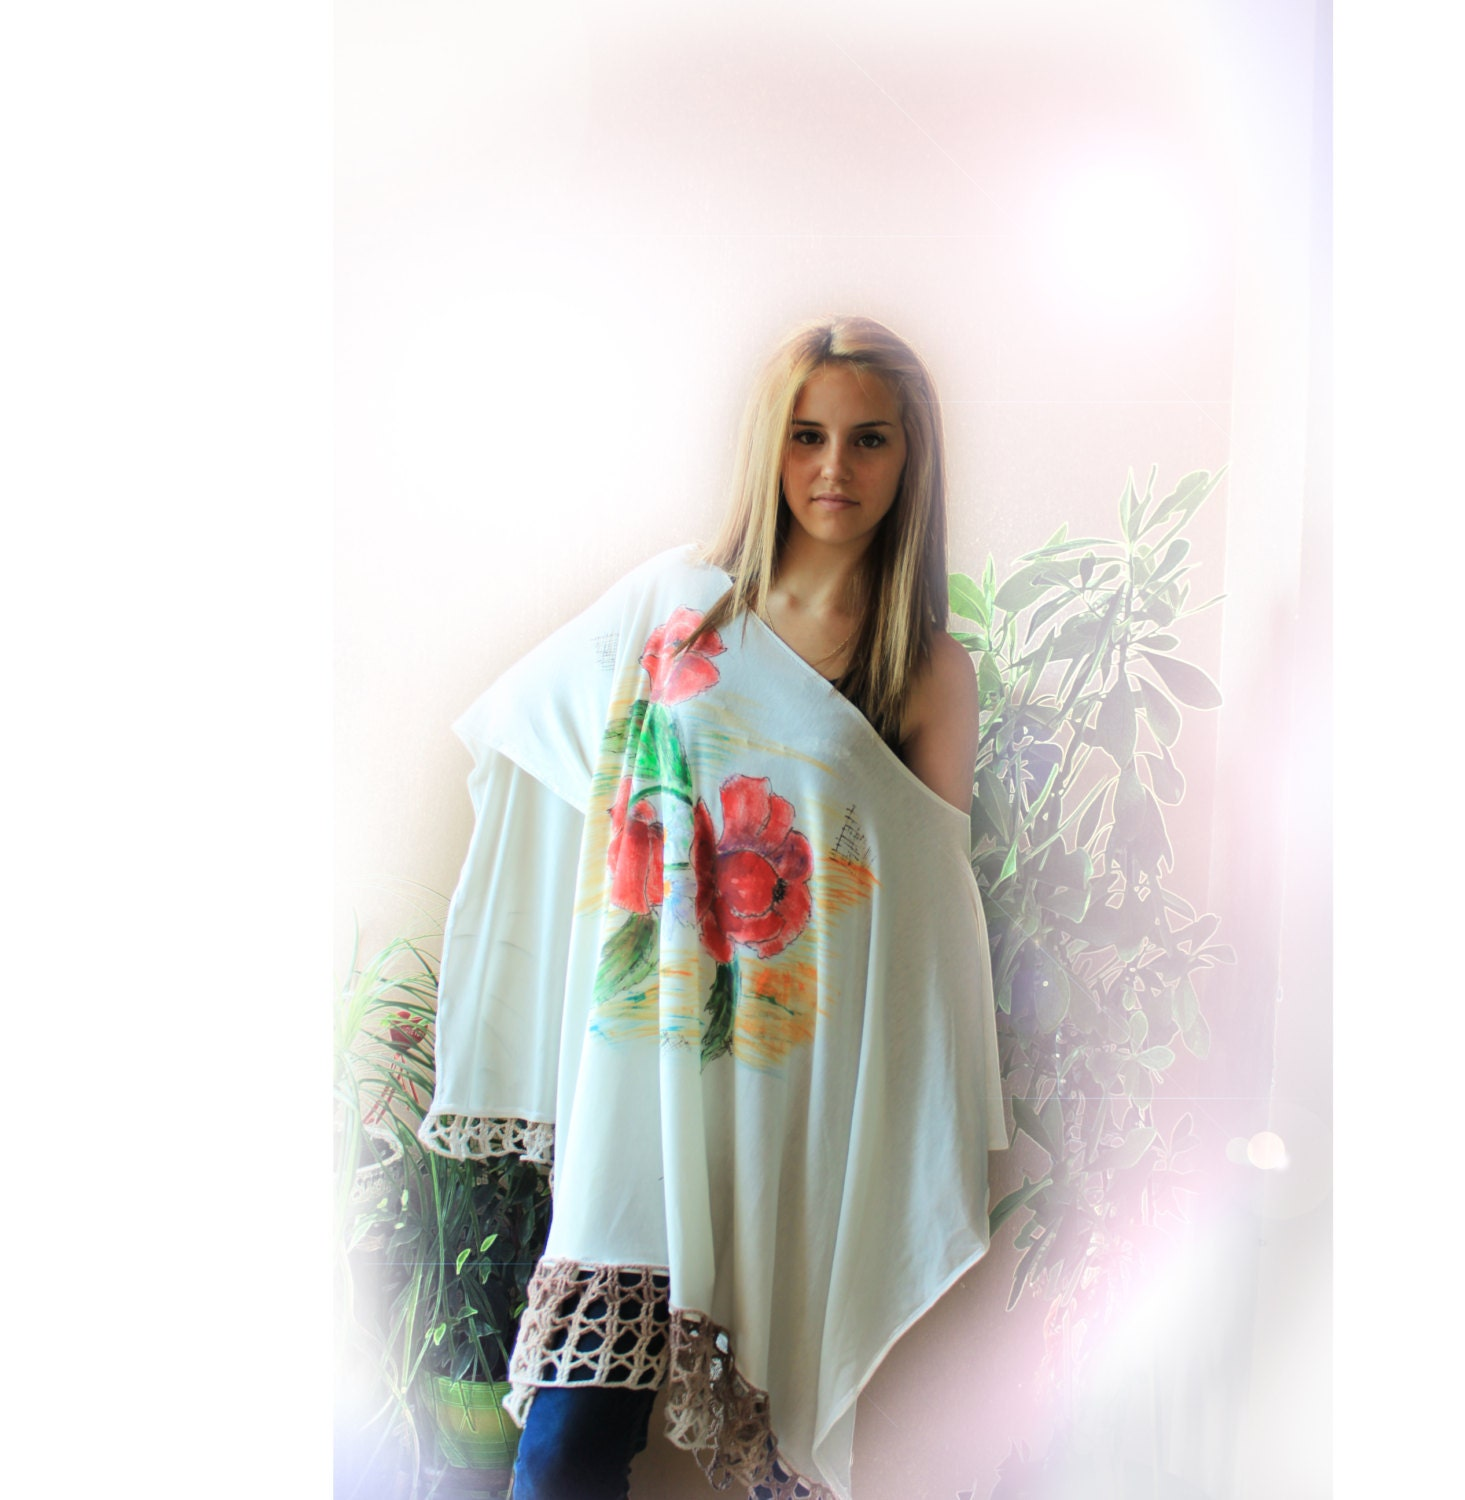 Fine Knitting Poncho, Hand Painted Poppy and Daisy Flowers, Cream Color, Hand Croced Lace Decorated, Autumn/ Winter / Spring, Women, OOAK - MKrisArt